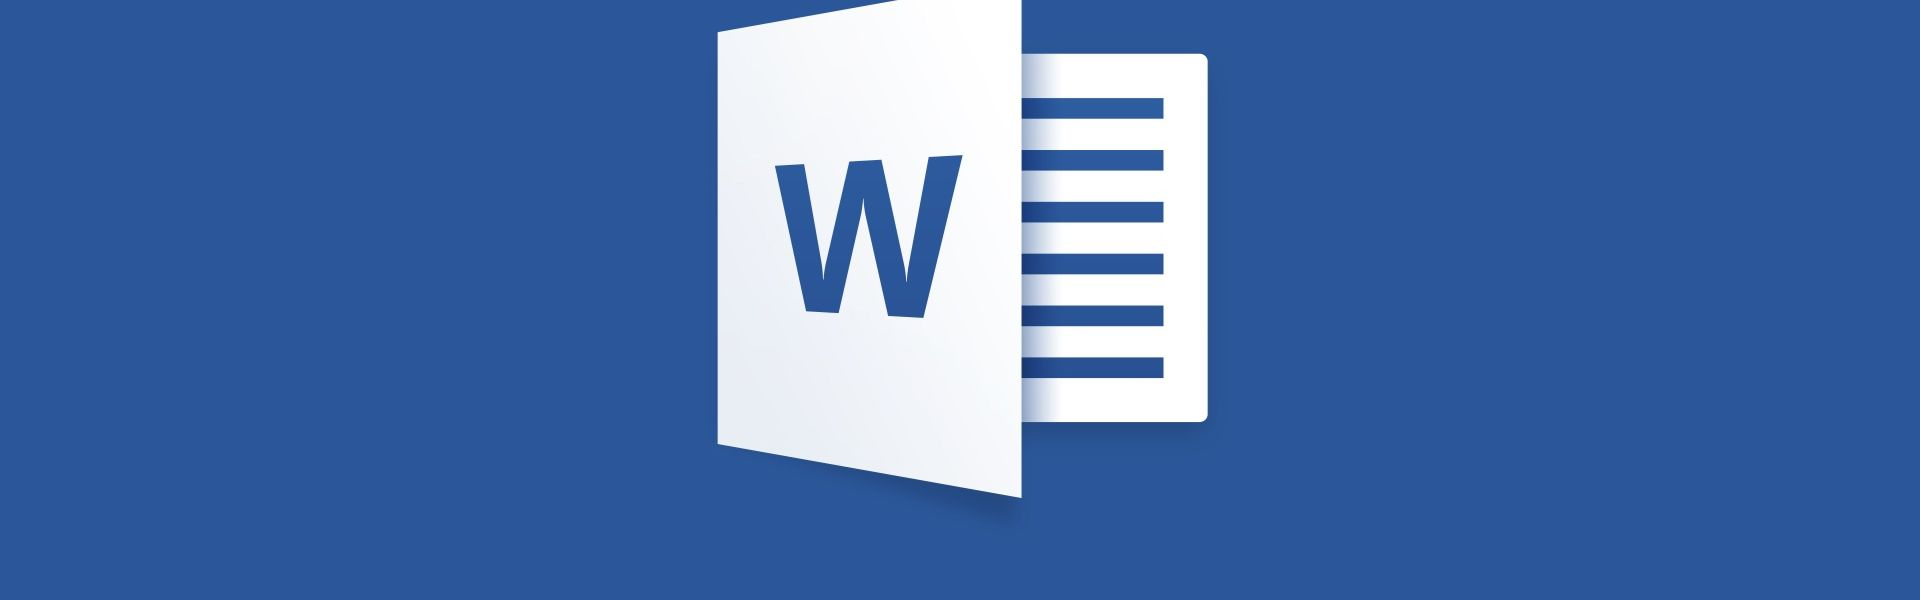 Online training Microsoft Word basis